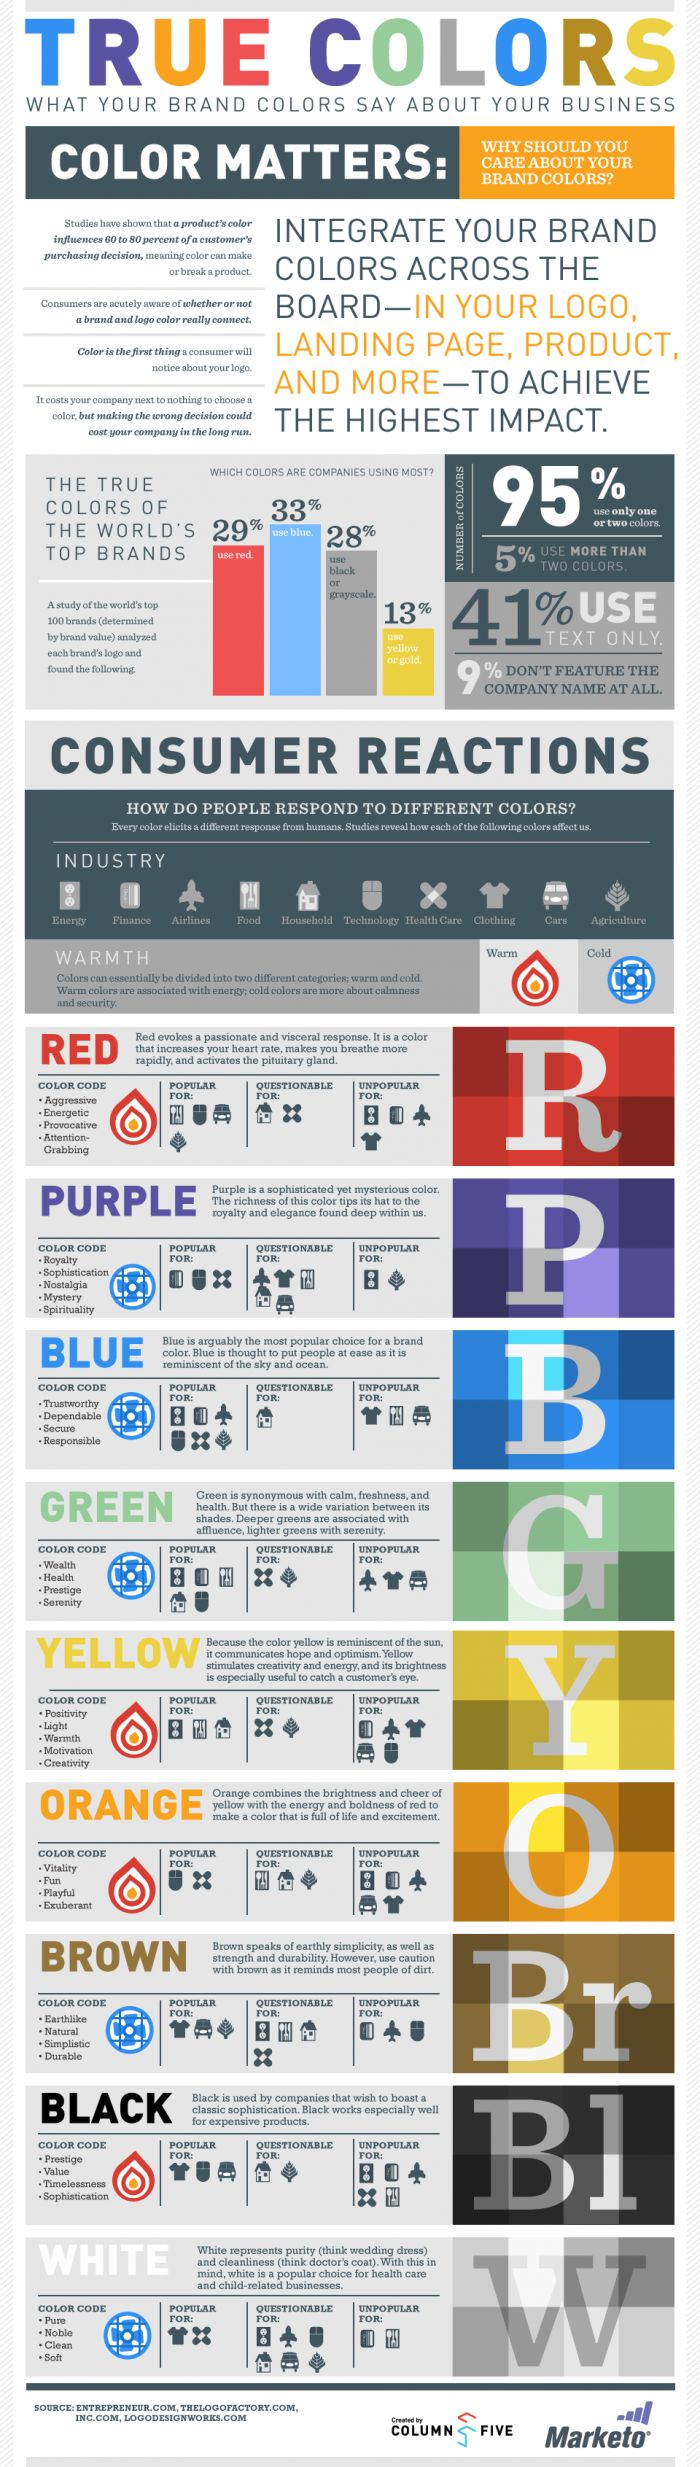 Best Branding Colors - Brand Colors Meaning for Your Business - http://www.larymdesign.com/branding/best-branding-colors-brand-colors-meaning-business/